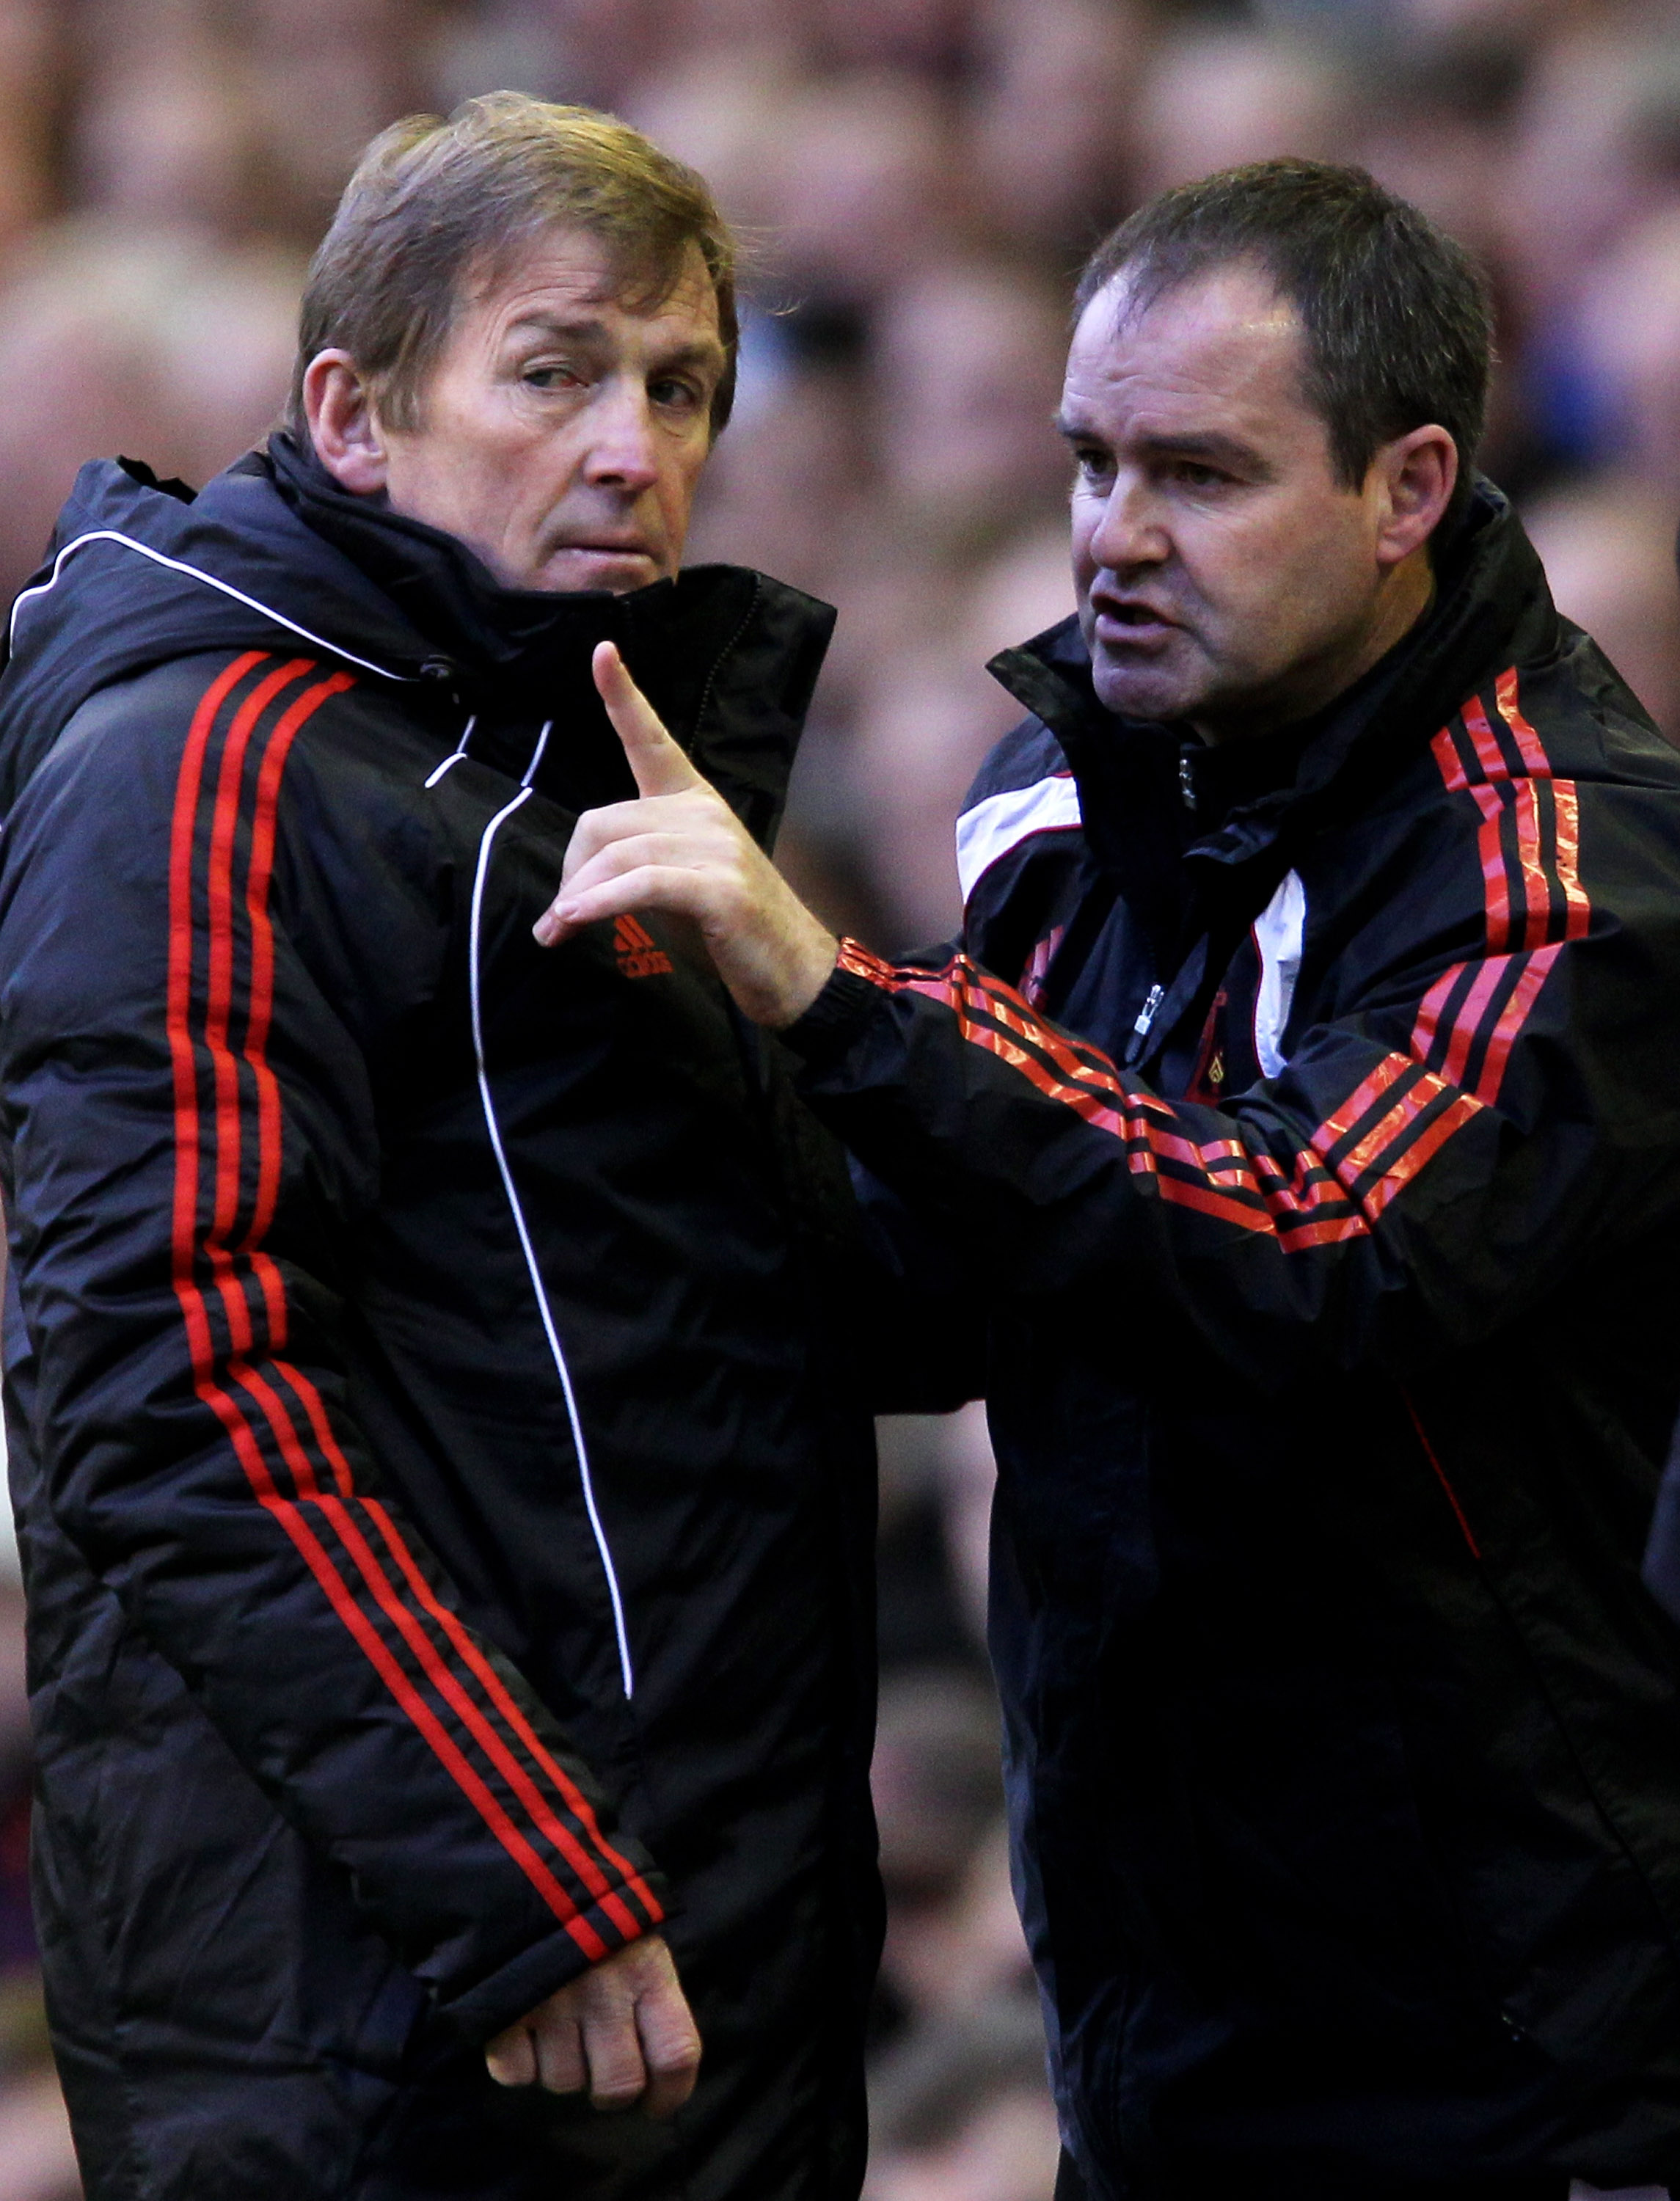 LIVERPOOL, ENGLAND - JANUARY 16:  Liverpool Manager Kenny Dalglish issues instructions with Head Coach Steve Clarke (R) prior to the Barclays Premier League match between Liverpool and Everton at Anfield on January 16, 2011 in Liverpool, England.  (Photo